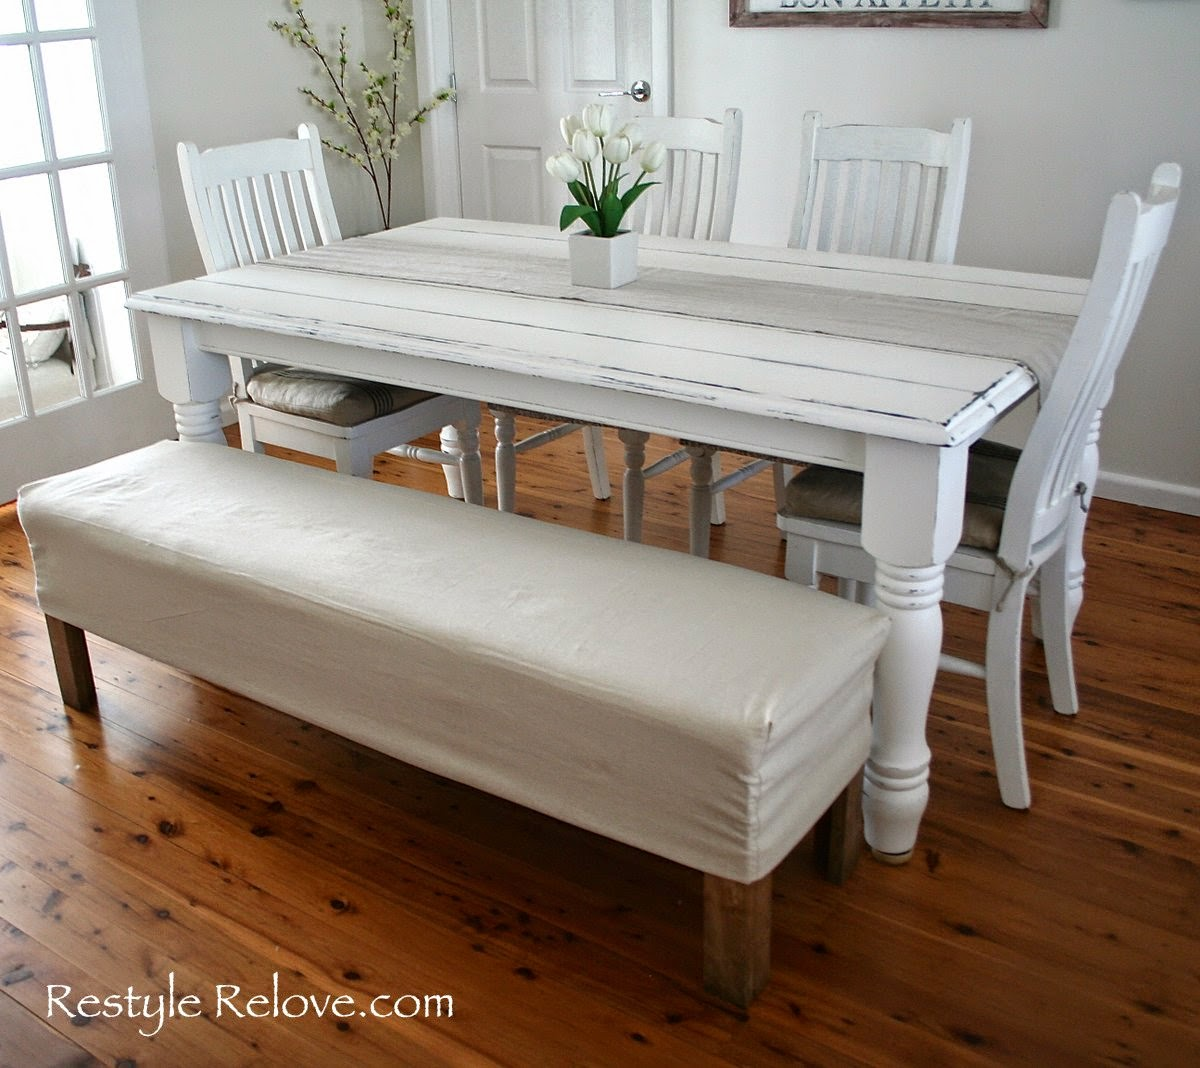 Superb img of Restyle Relove: Padded Dining Room Bench Seat with Removable Washable  with #3E1E0B color and 1200x1068 pixels